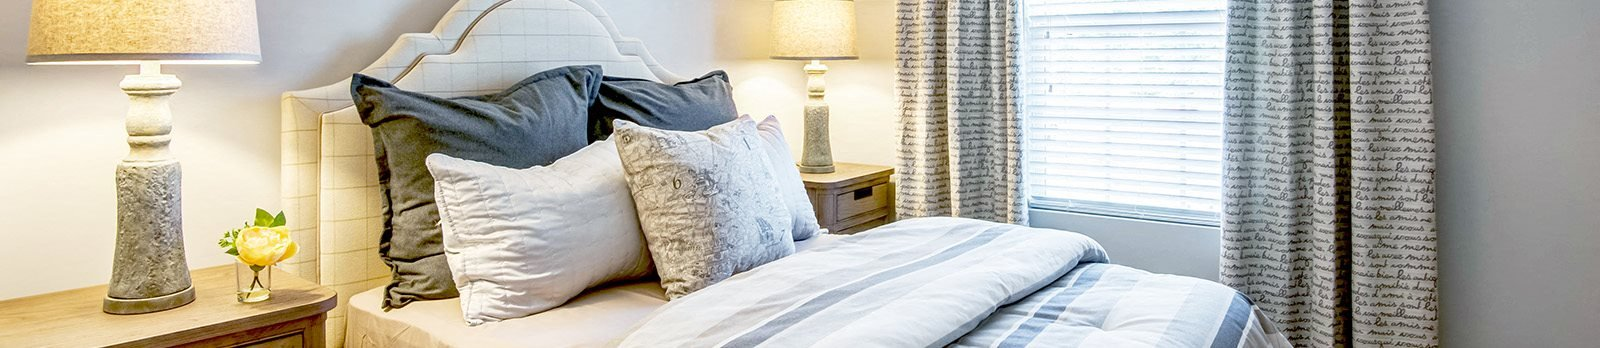 Live in cozy bedrooms at Broadstone Village Apartments, High Point